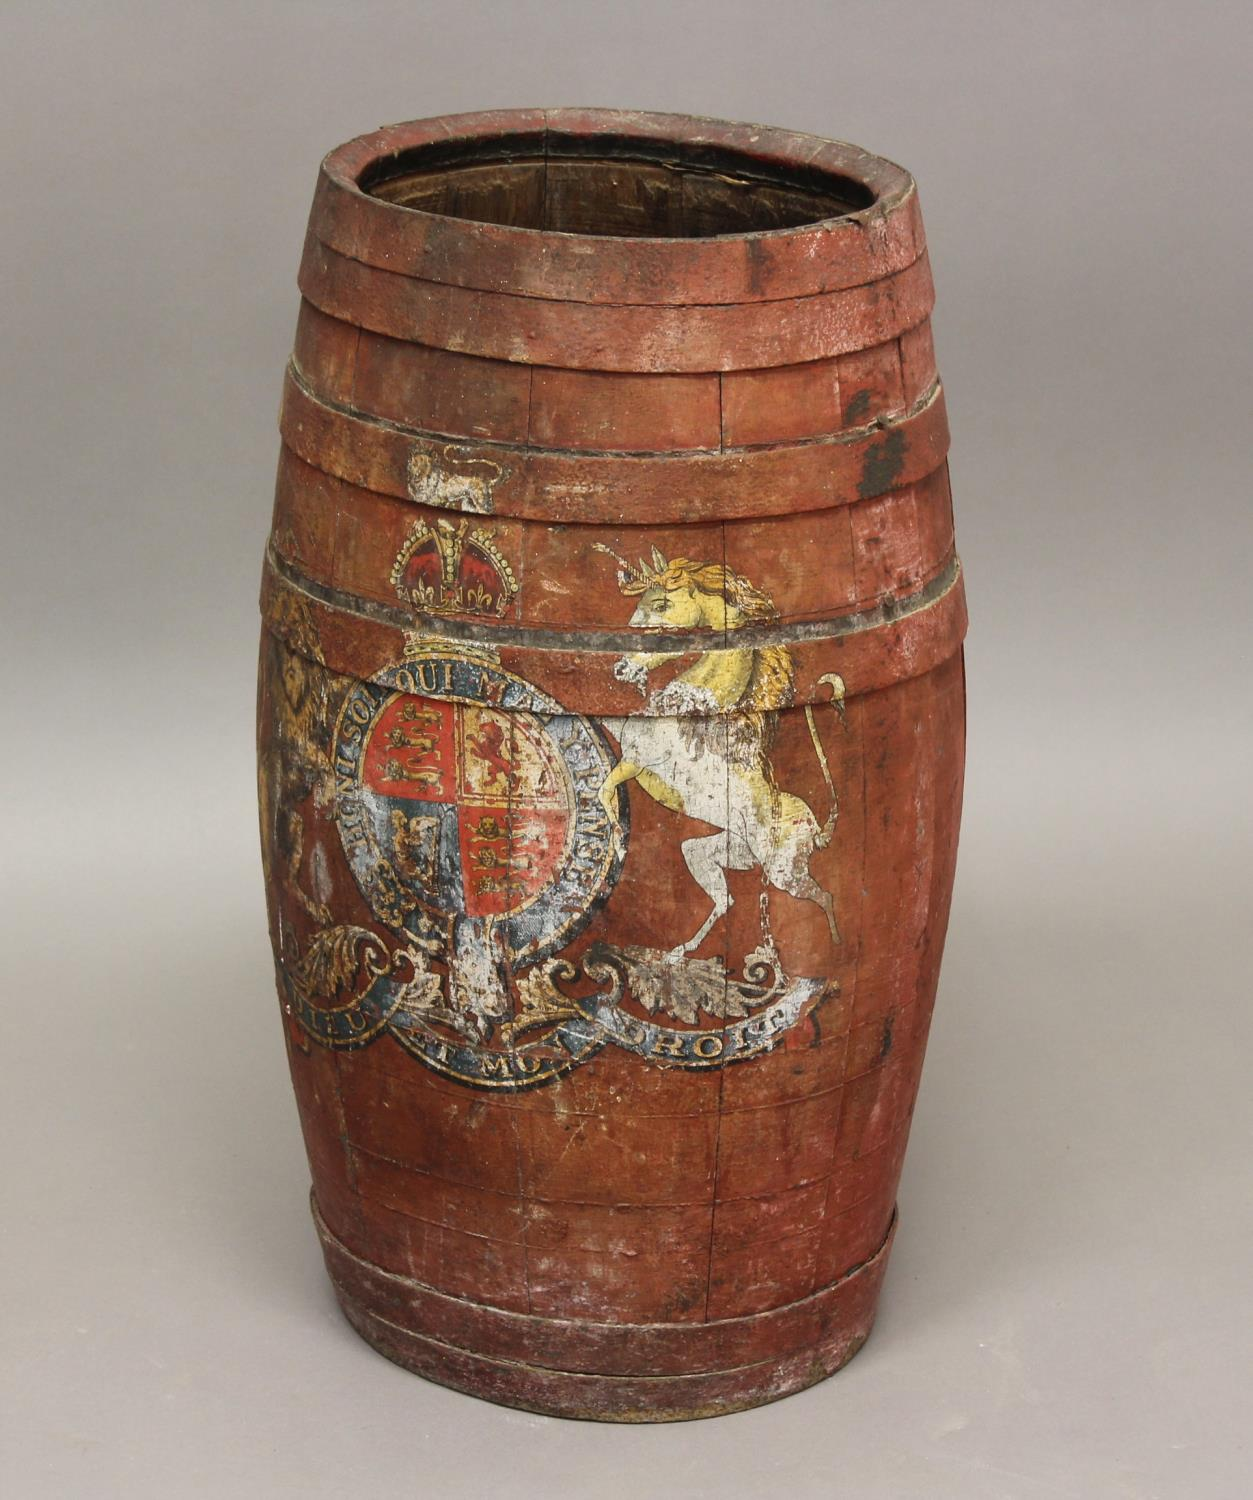 A RED PAINTED BARREL WITH ROYAL COAT OF ARMS. A red painted coopered barrel of oval bellied form